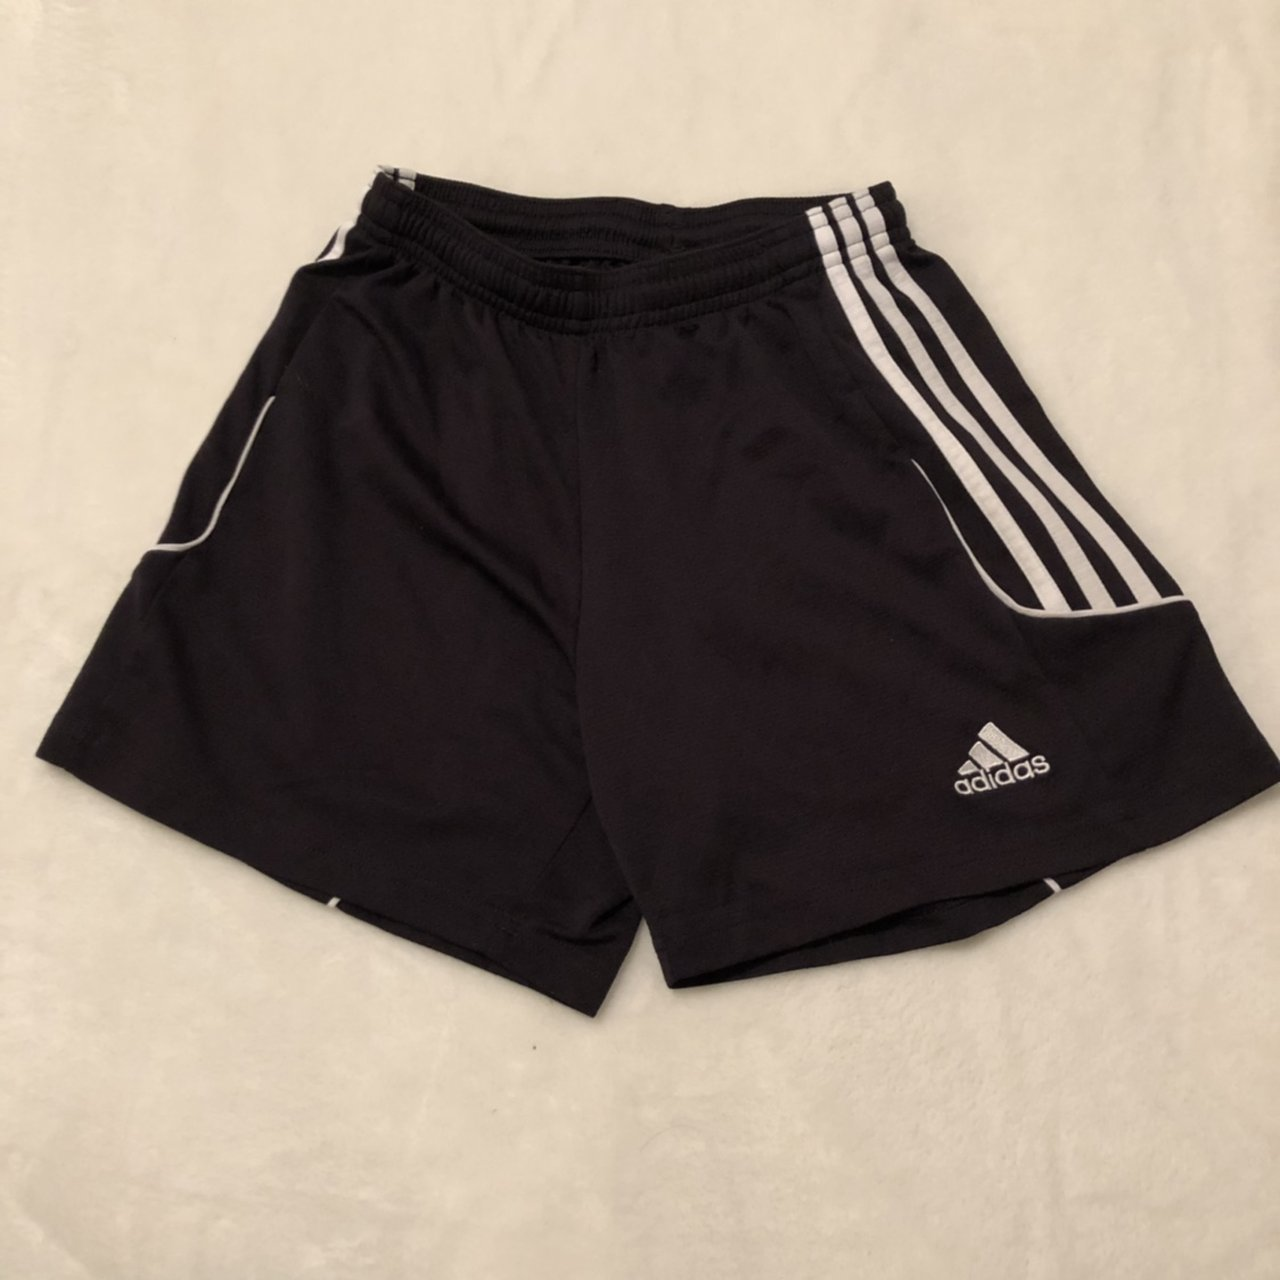 Stripes Climalite Black Shorts Wore With For Depop White Adidas I 7Fx6wqCC